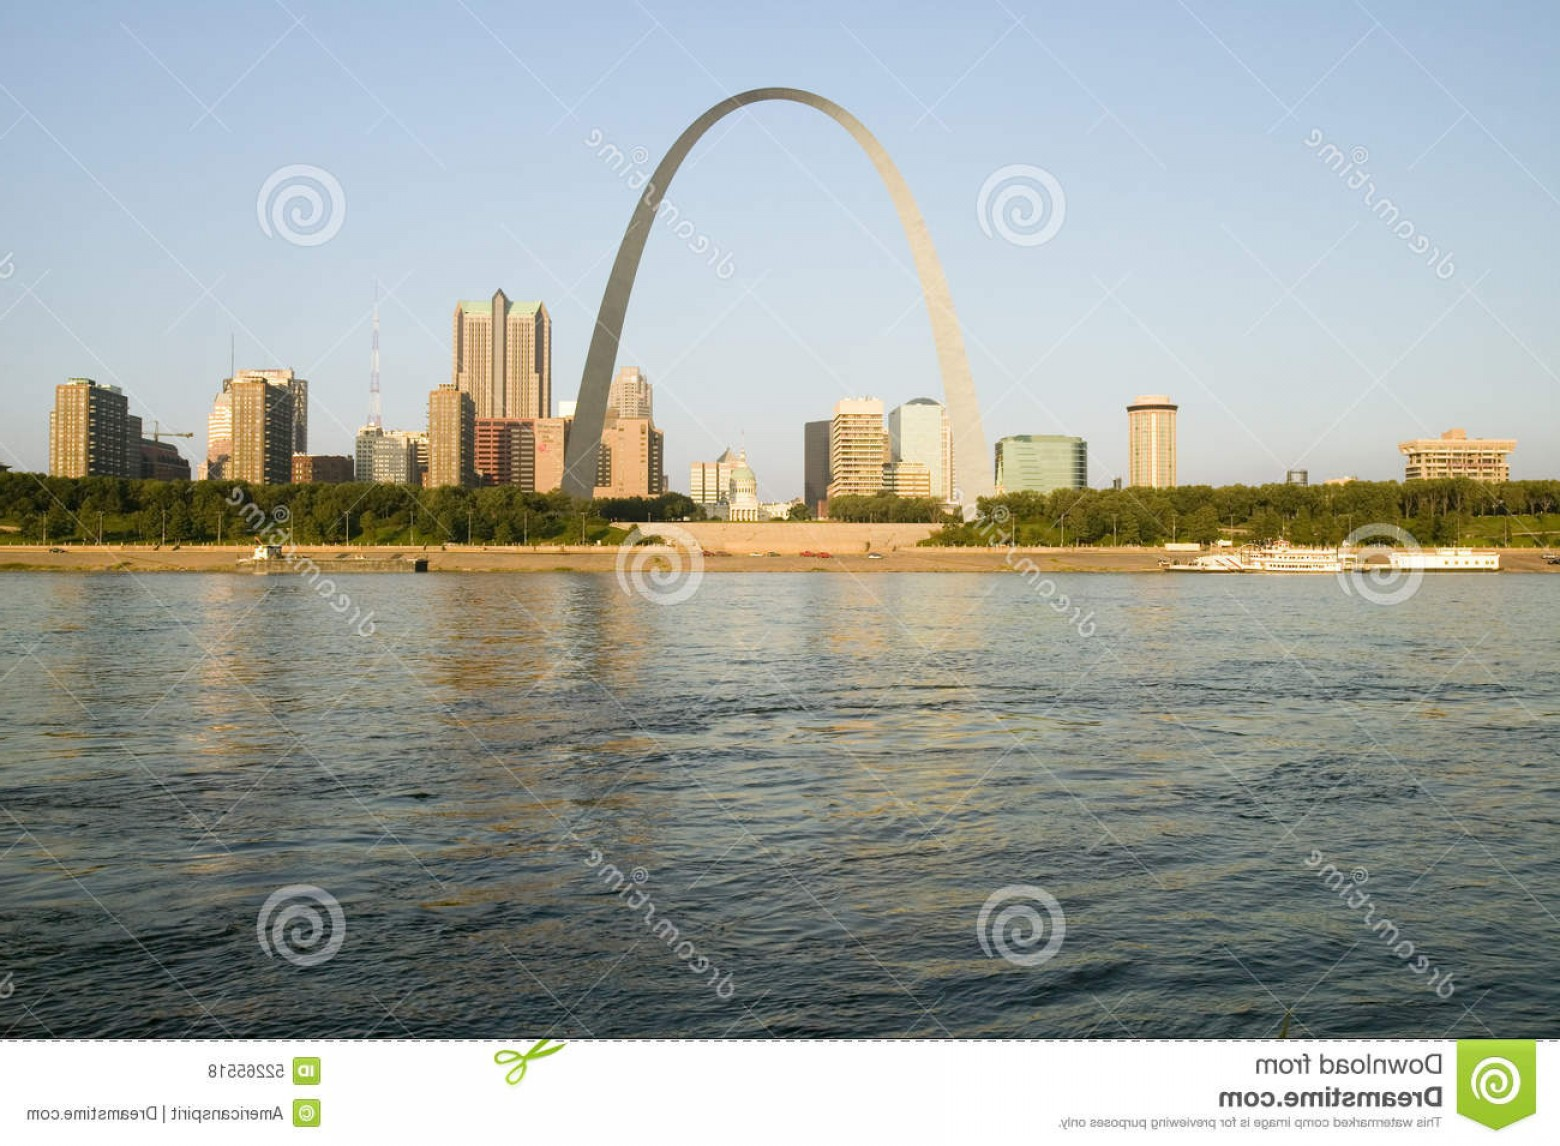 Arch Vector Illinios: Editorial Stock Photo Daytime View Gateway Arch Gateway To West Skyline St Louis Missouri Sunrise East St Louis Illinois Image